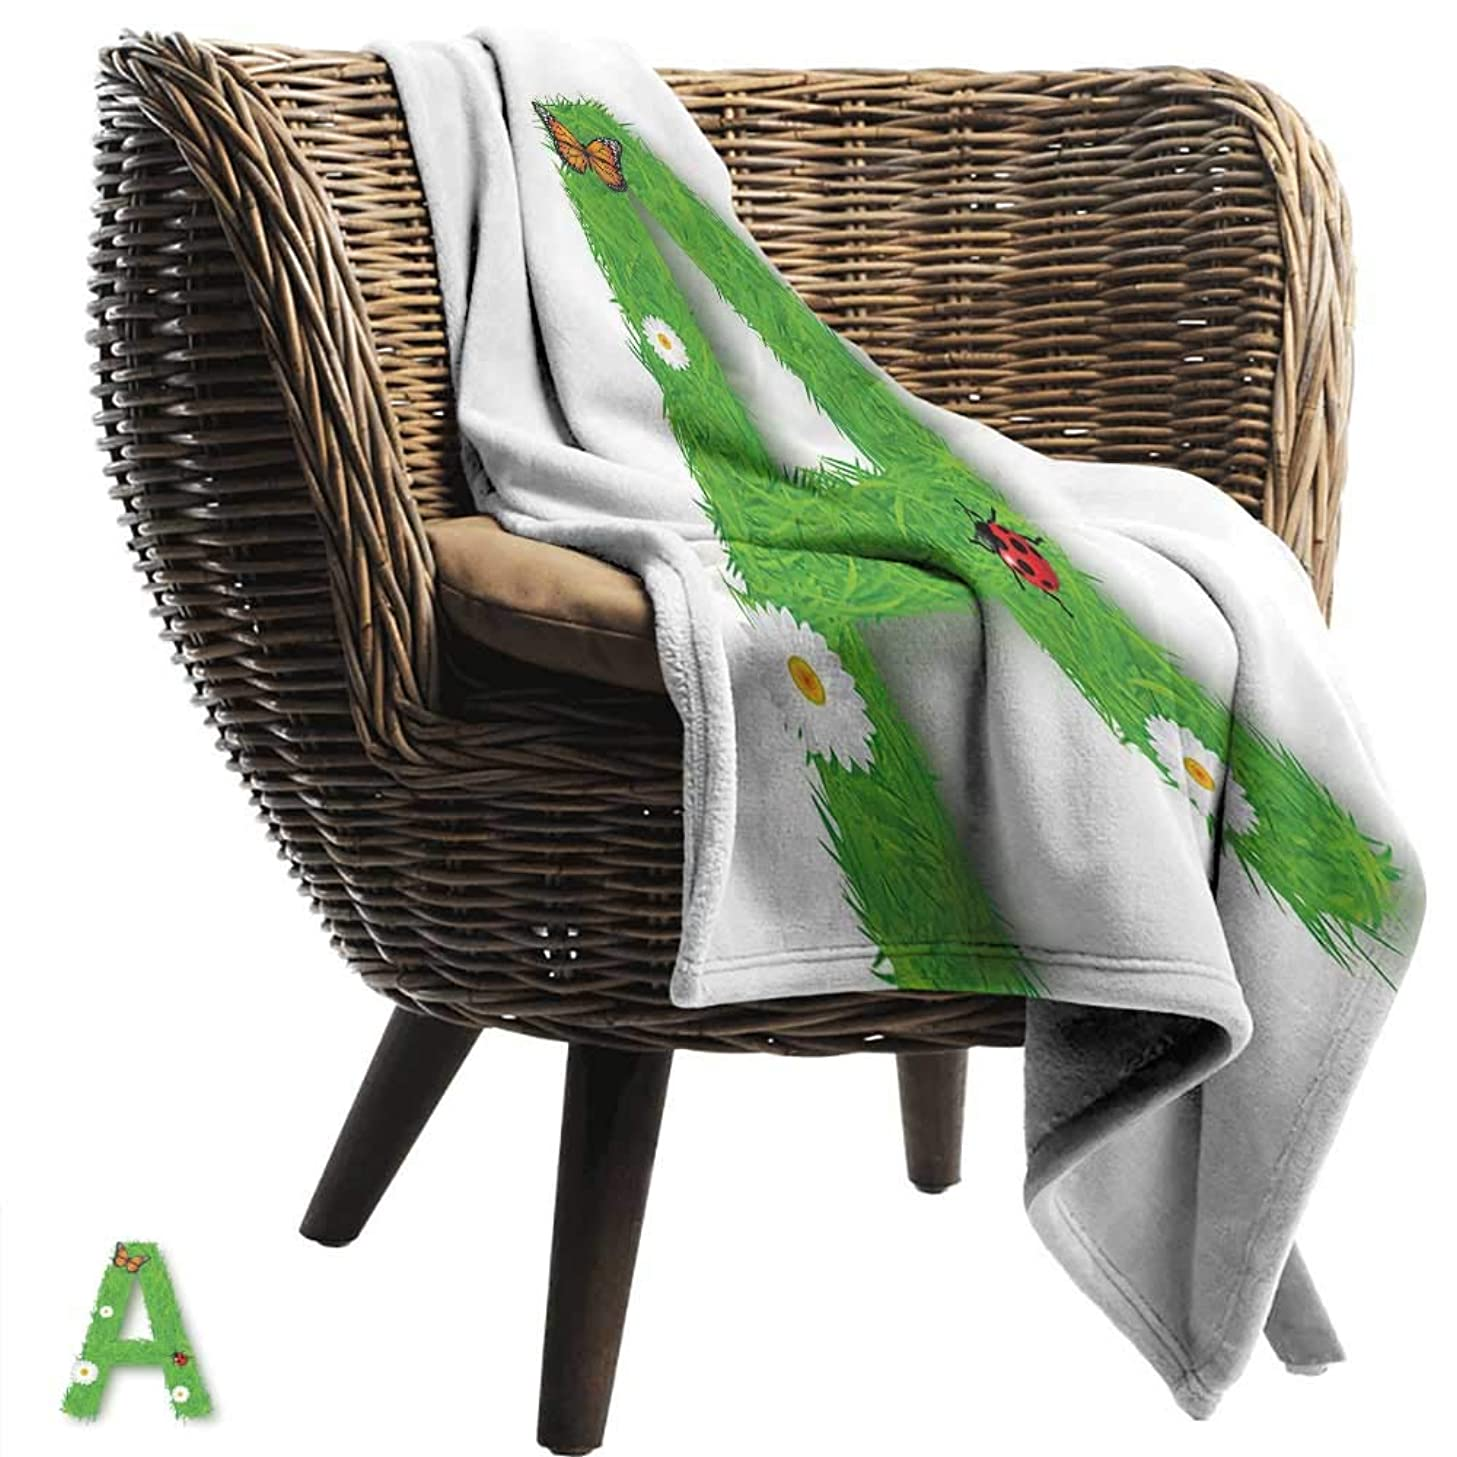 WinfreyDecor Letter A Living Room/Bedroom Warm Blanket Fresh My Name Style Capital A with Eco Spring Elements Animal Wings Blooms Ultra Soft and Warm Hypoallergenic 55